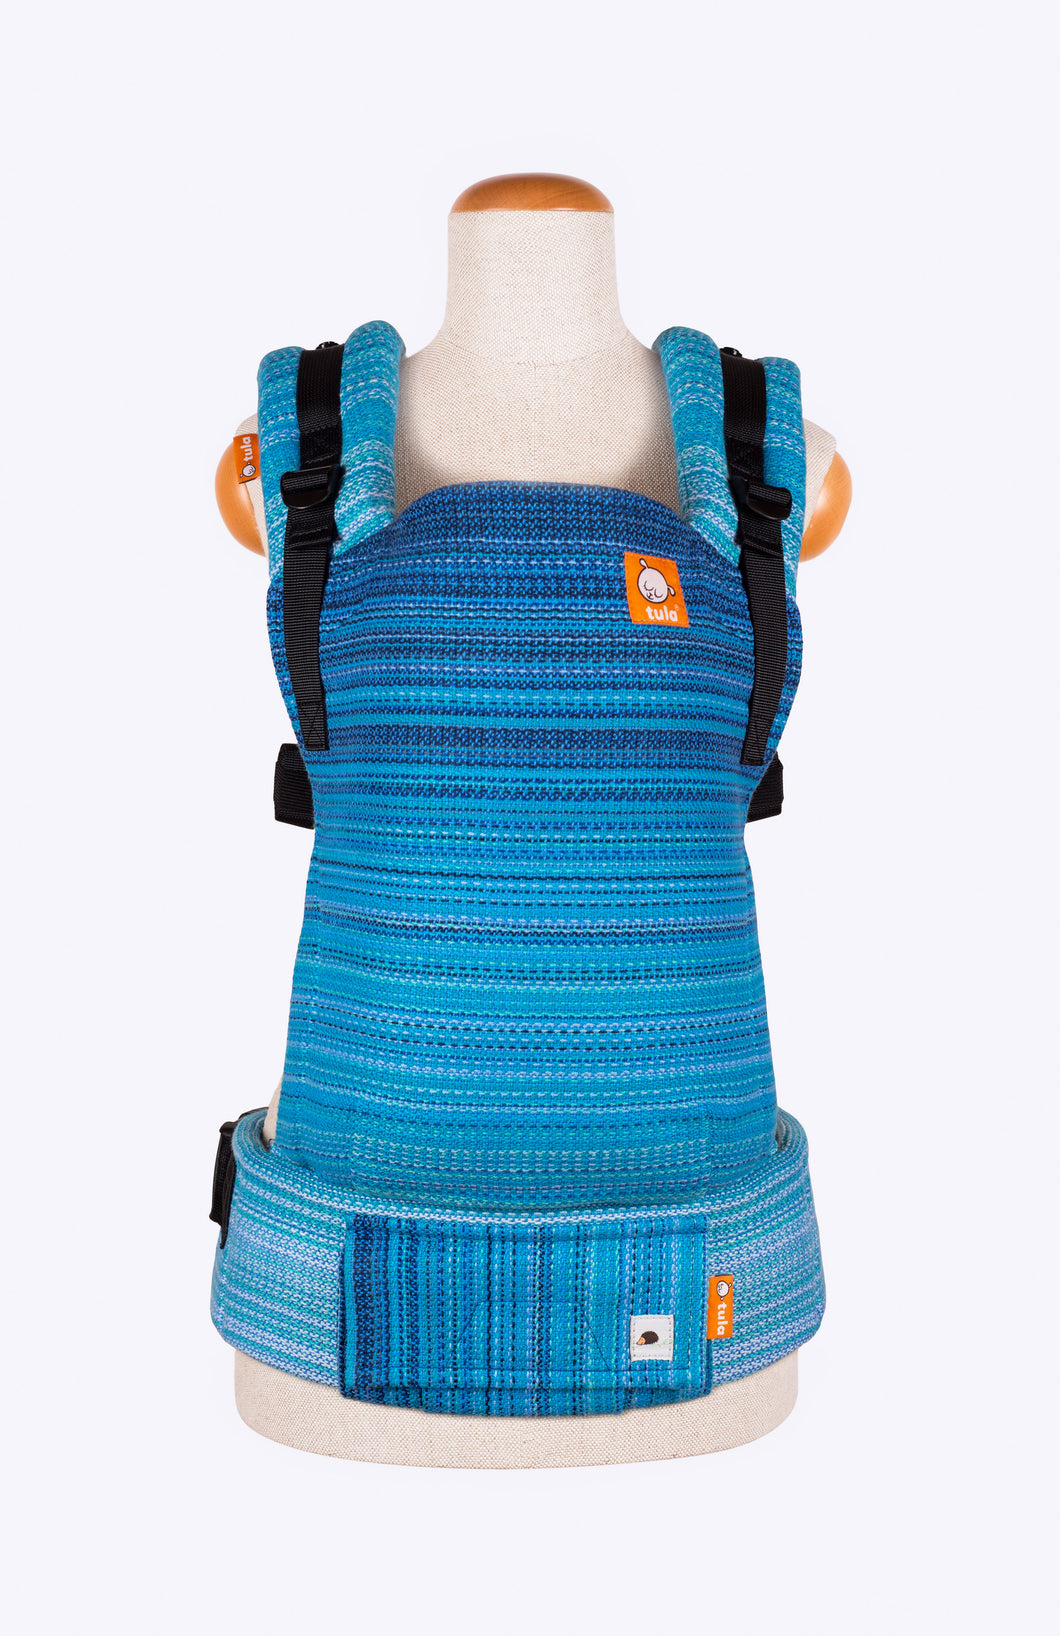 Erizo Canova Dreams Bleu - Tula Signature Baby Carrier